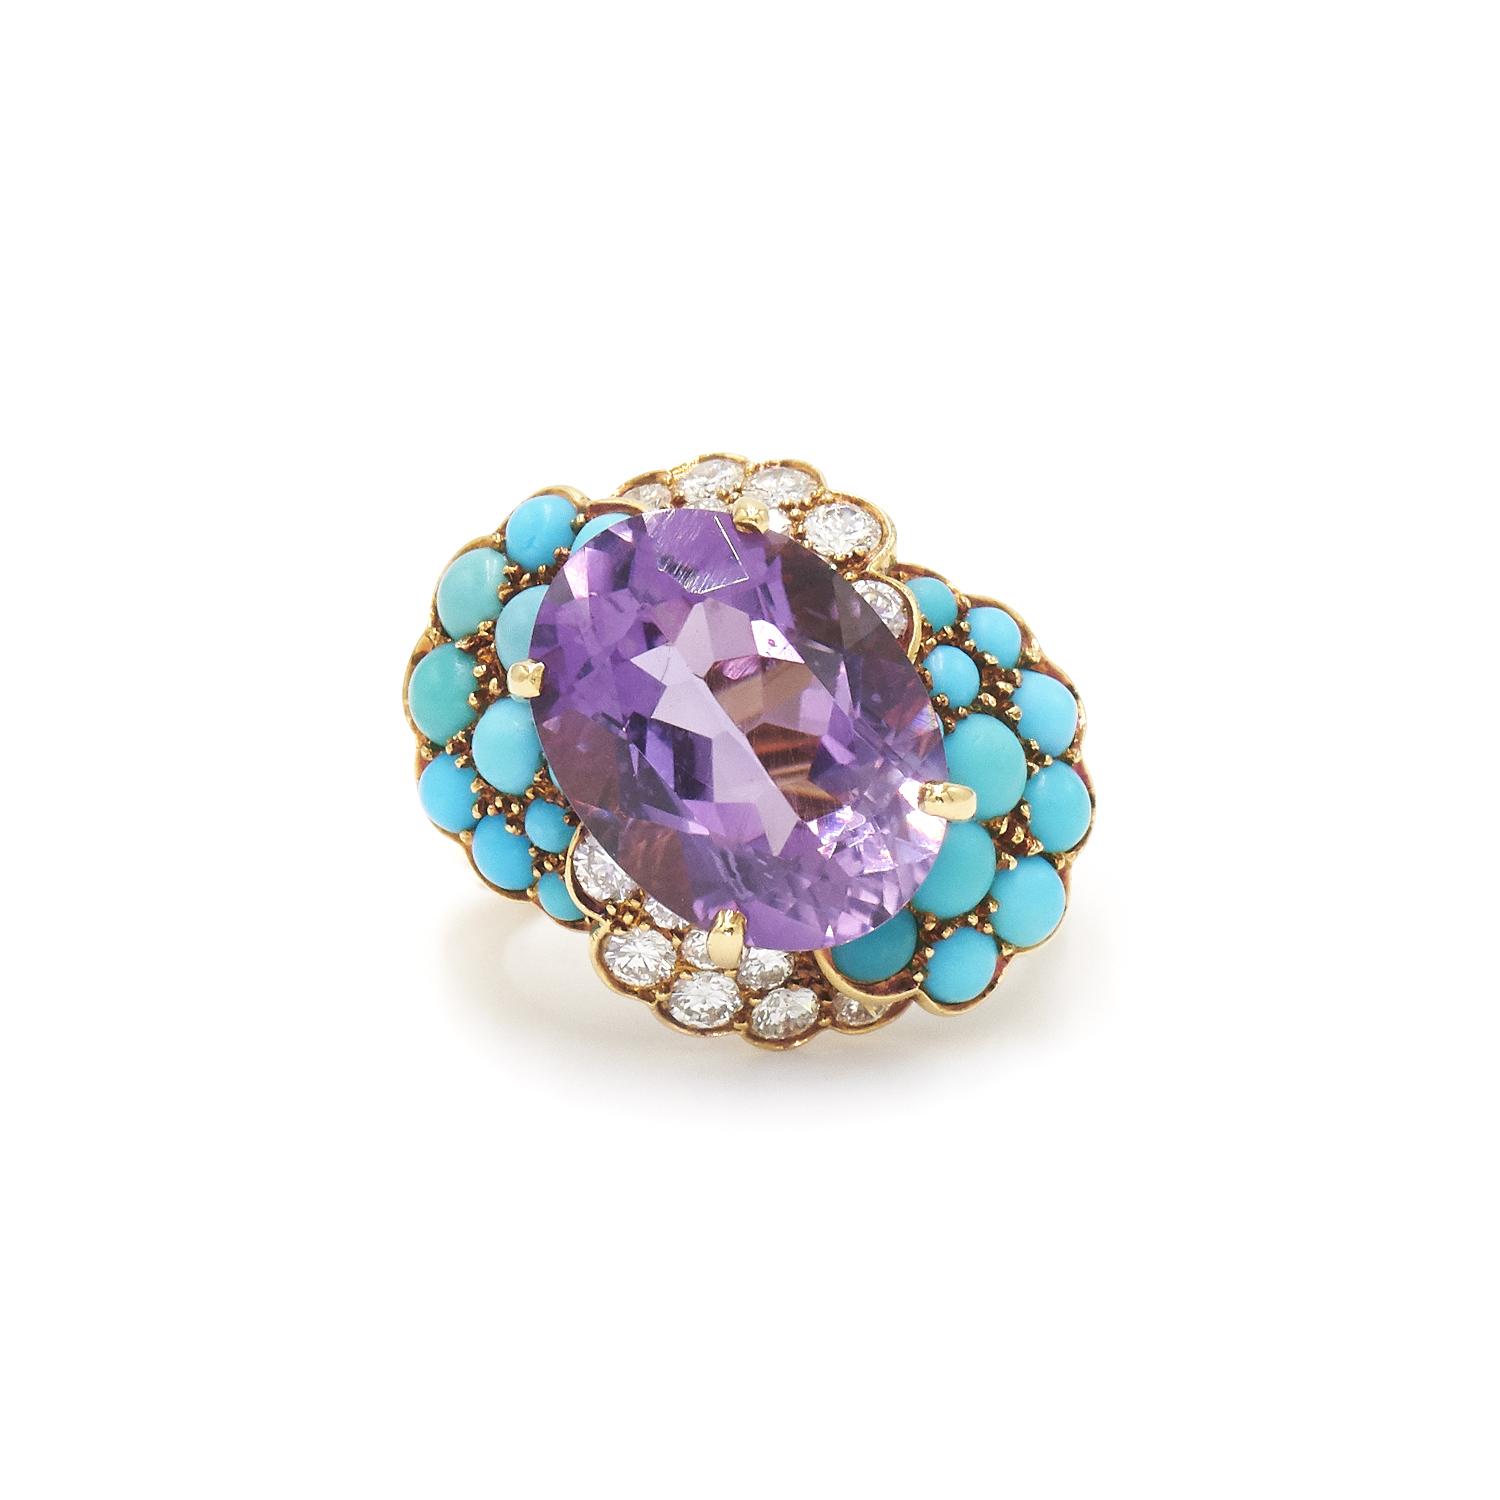 Amethyst, Turquoise and Diamond Cocktail Ring, Serial FL32247